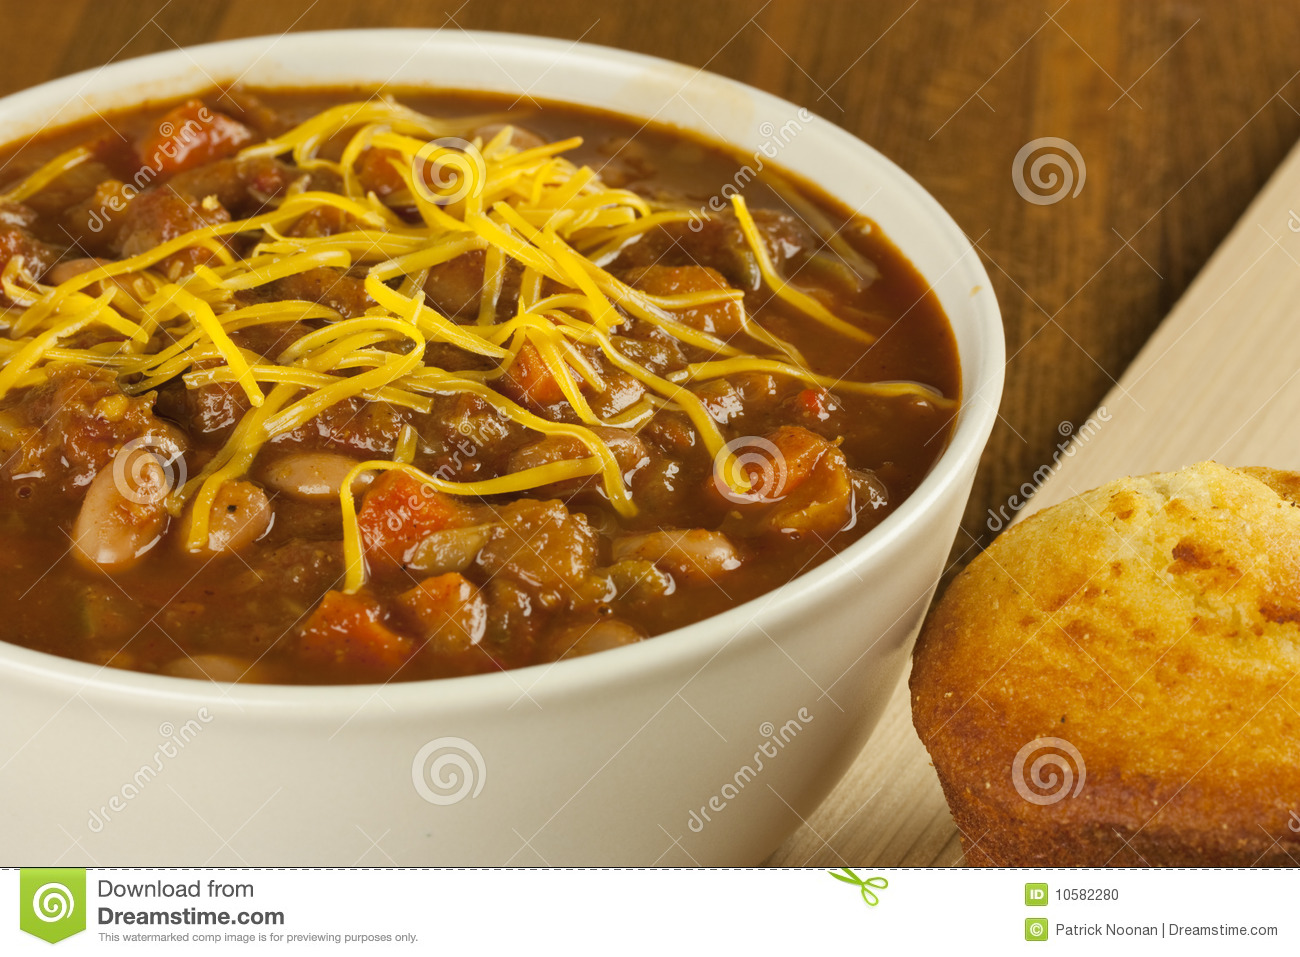 100 142 bowl chili photos free royalty free stock photos from dreamstime dreamstime com